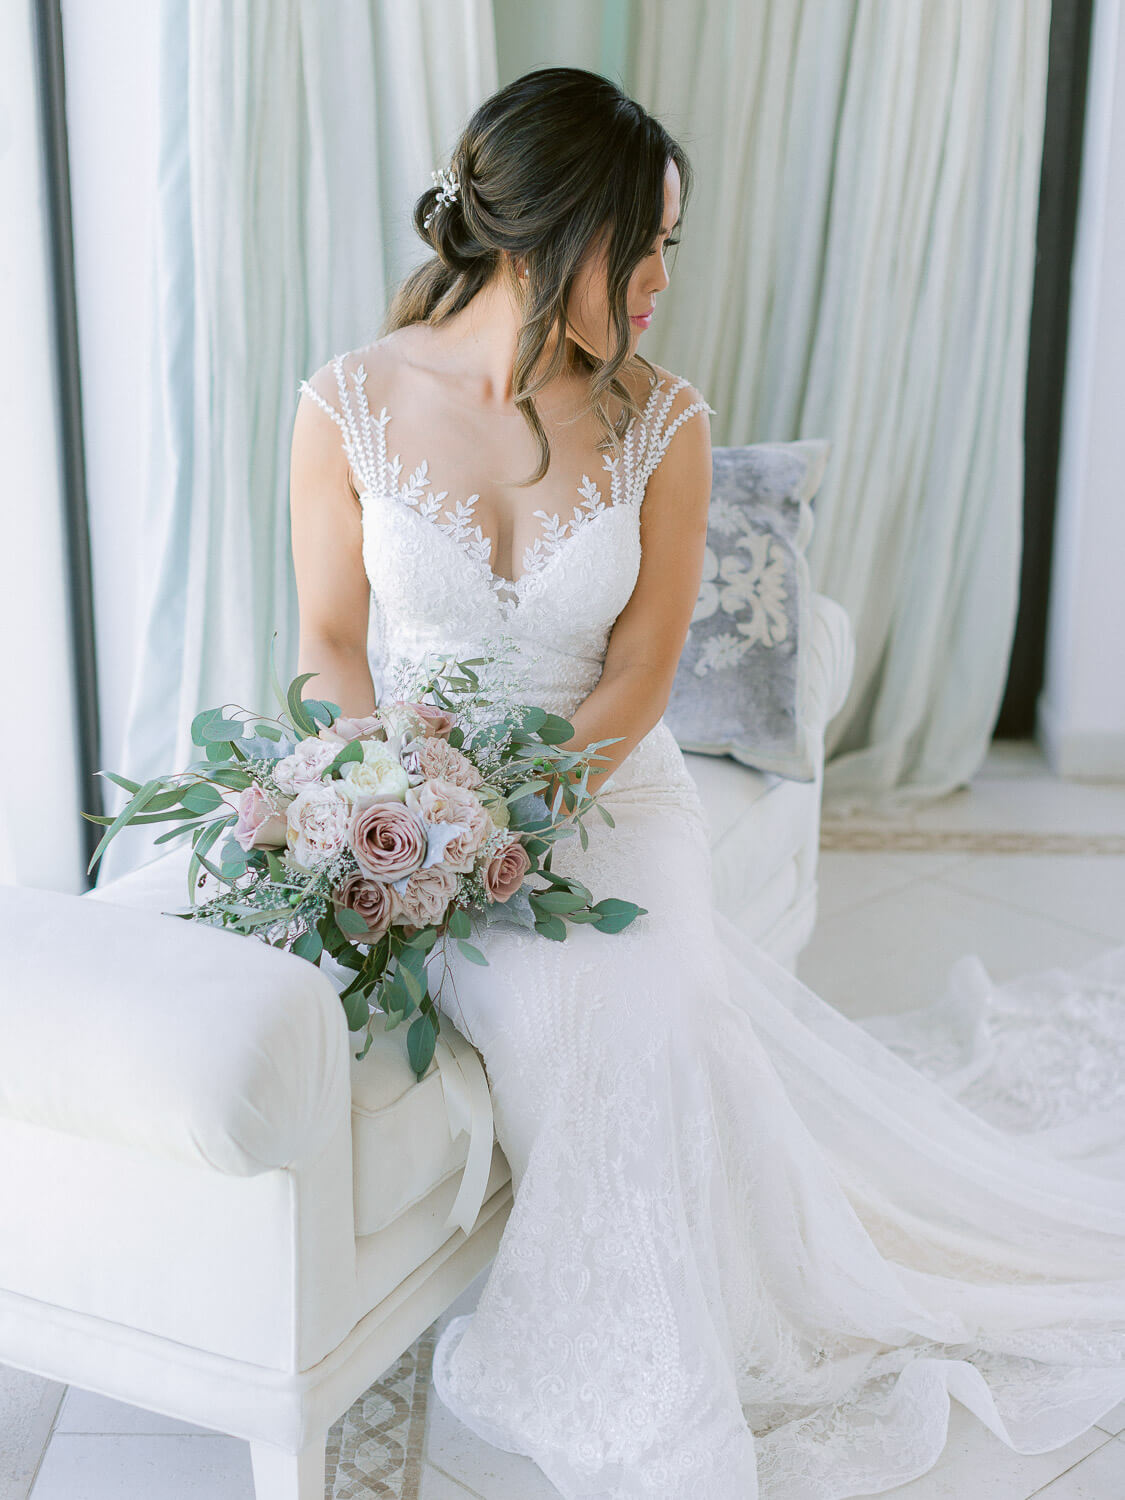 a sweet portrait of a bride and bouquet at her destination wedding in the Algarve by Portugal Wedding Photographer